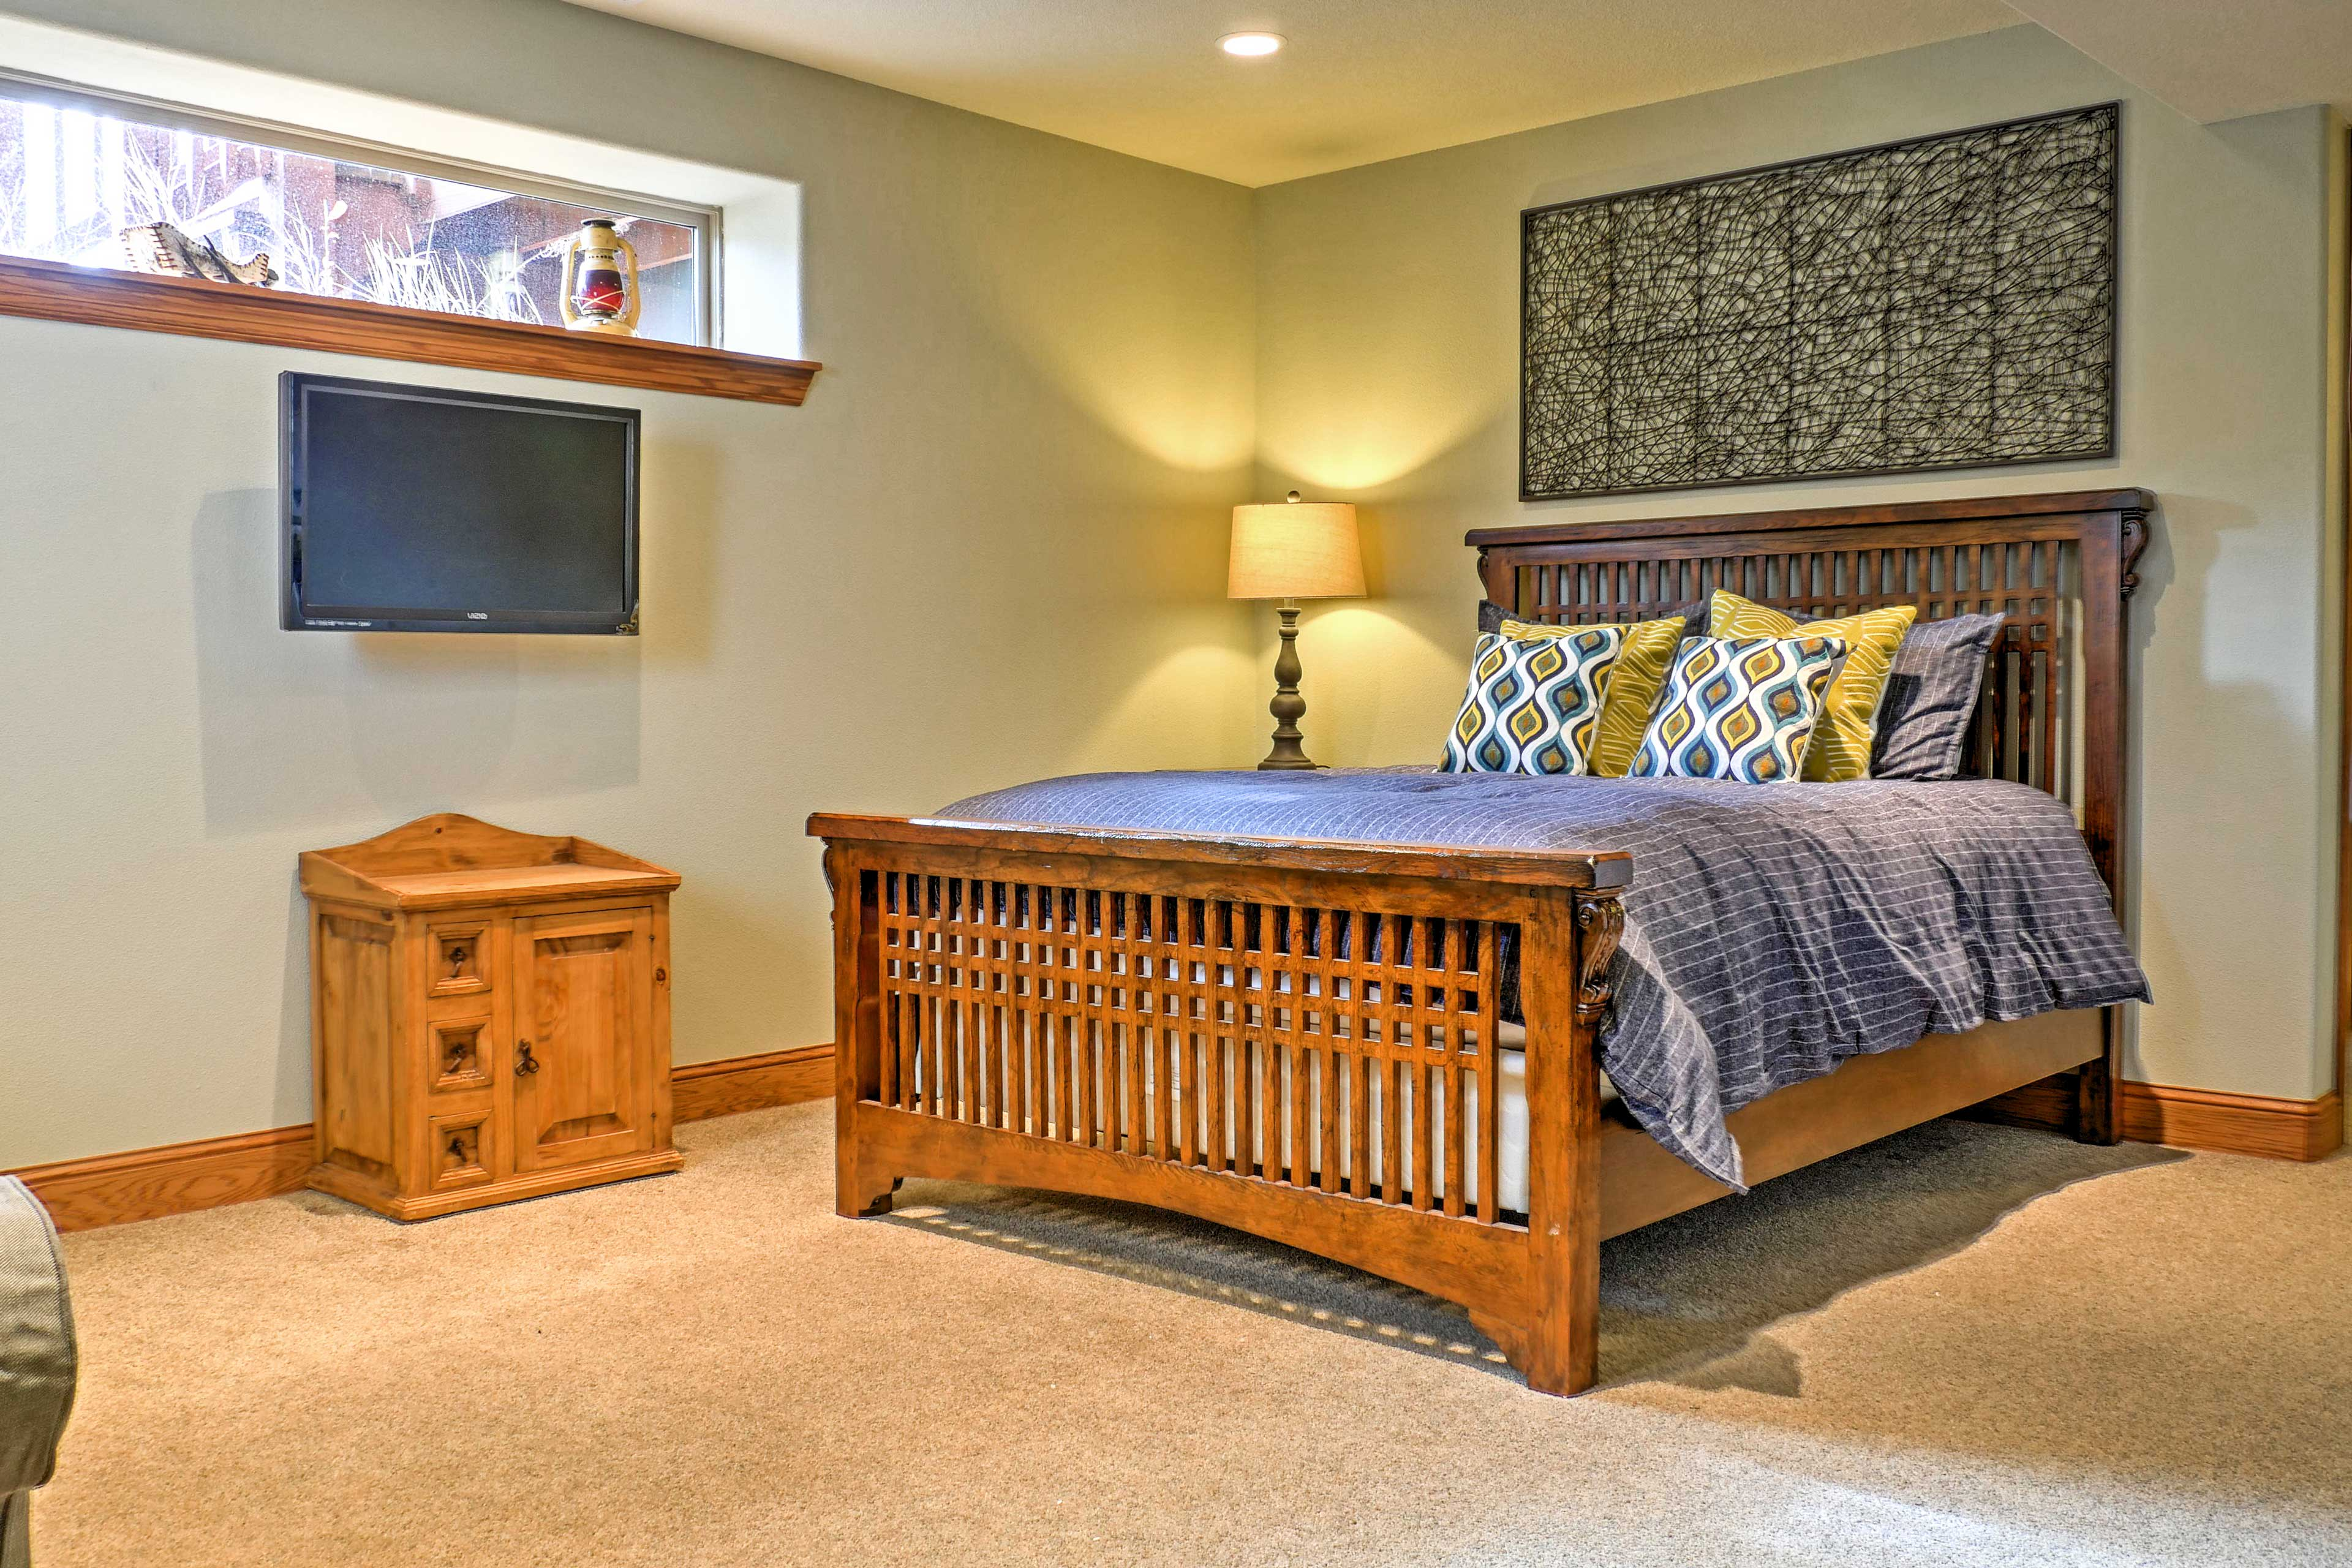 You'll love retreating to this spacious bedroom at the end of eventful vacation days.